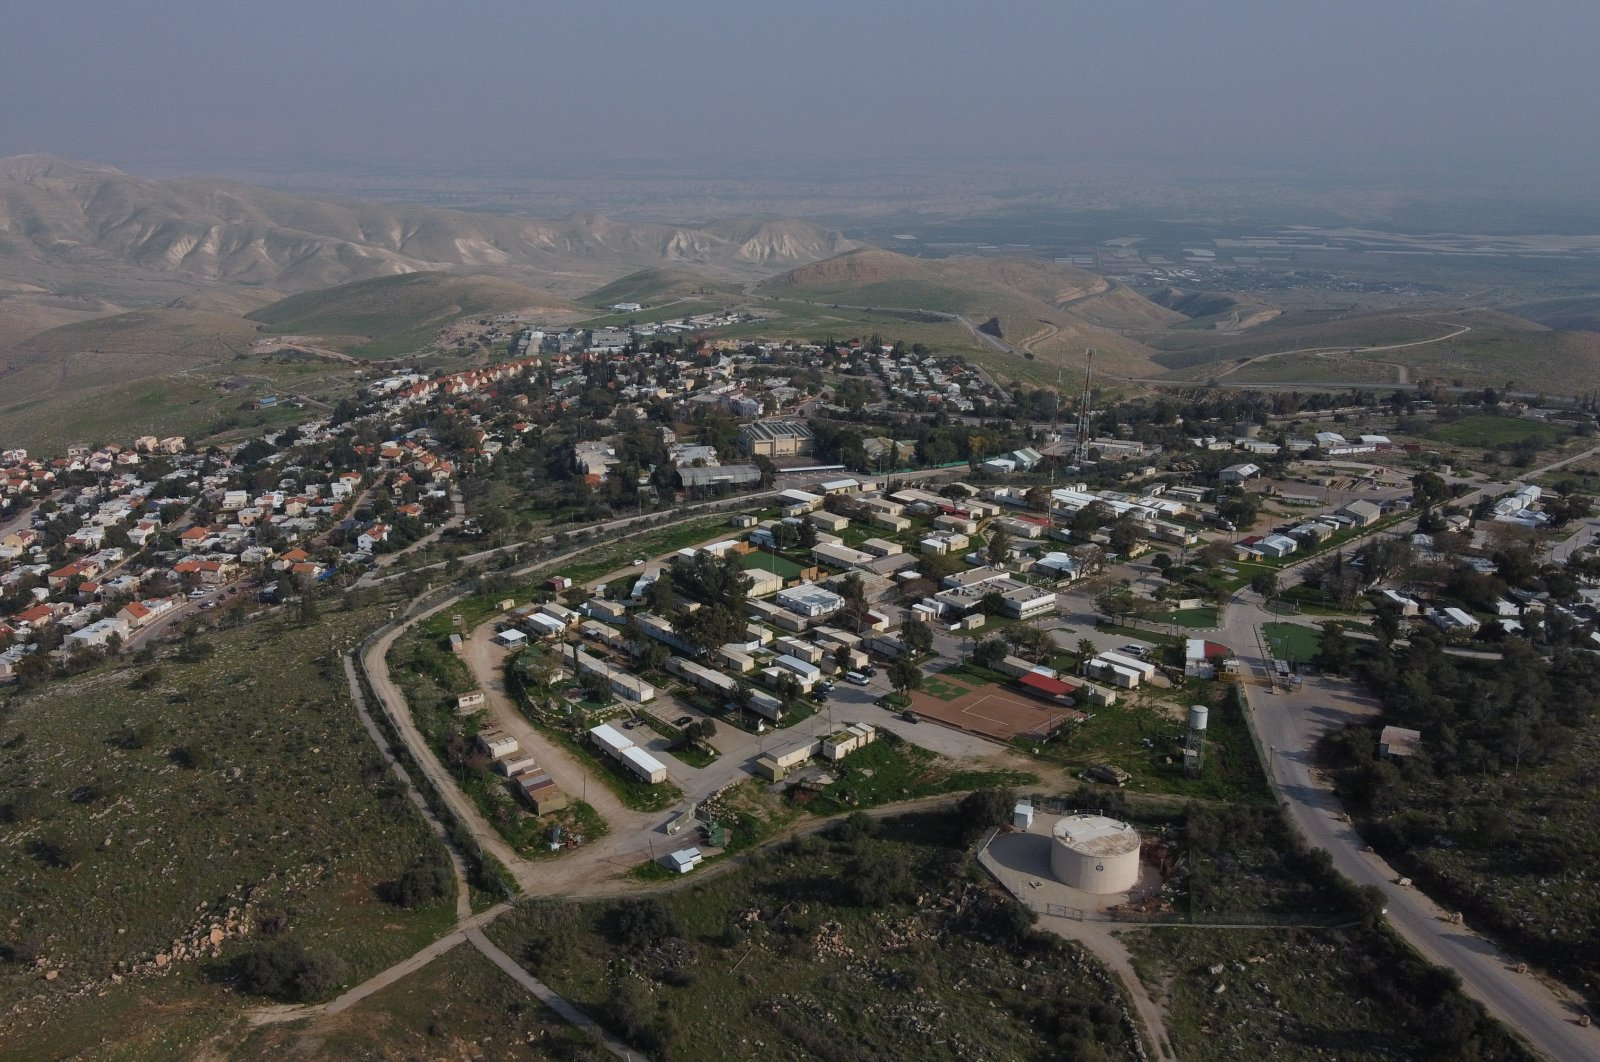 This file photo shows a view of the West Bank settlement of Ma'ale Efraim on the hills of the Jordan Valley, Feb. 18, 2020. (AP Photo)